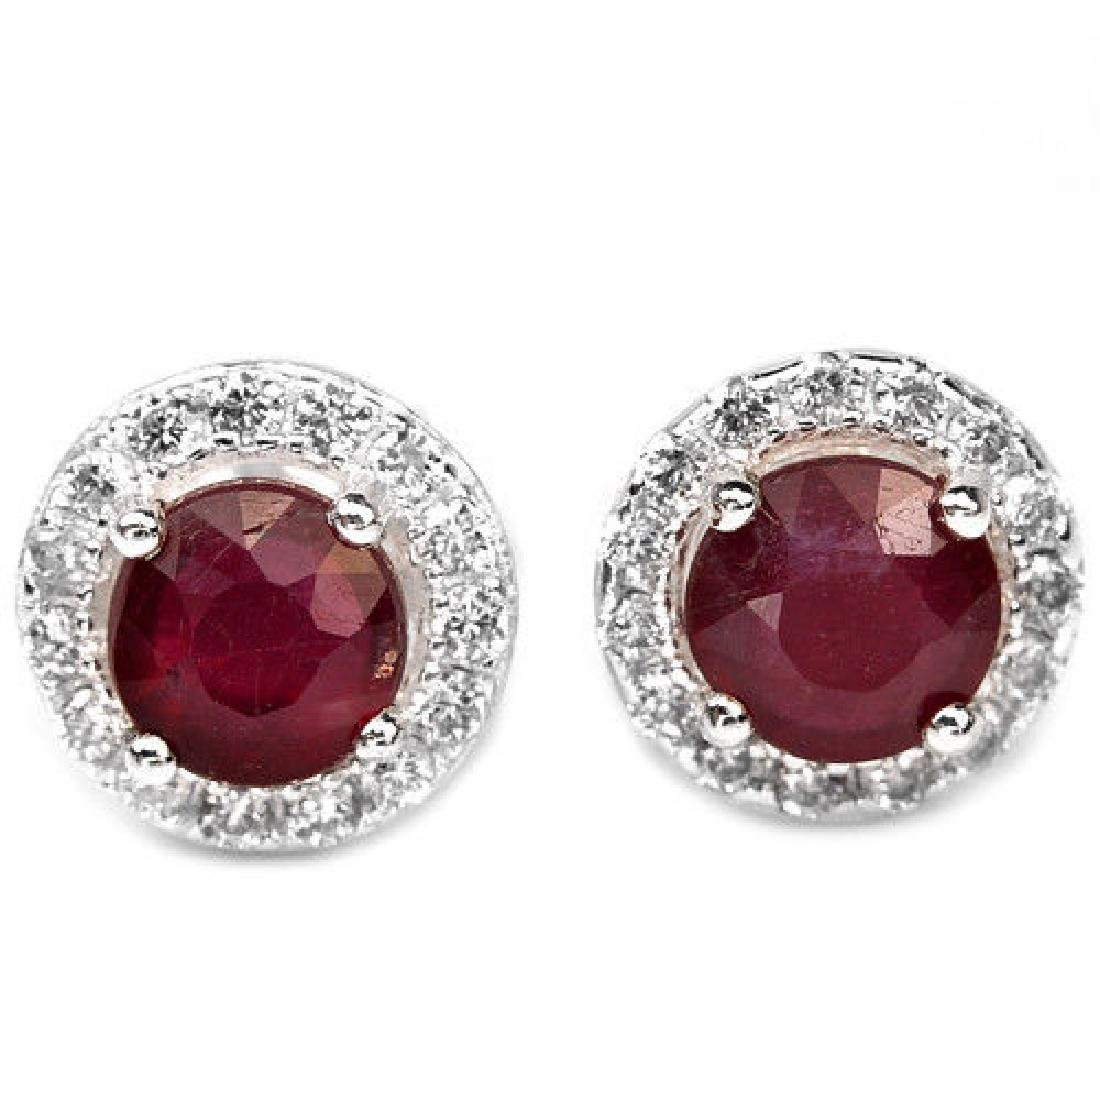 Natural Vivid Red Ruby Ear Studs